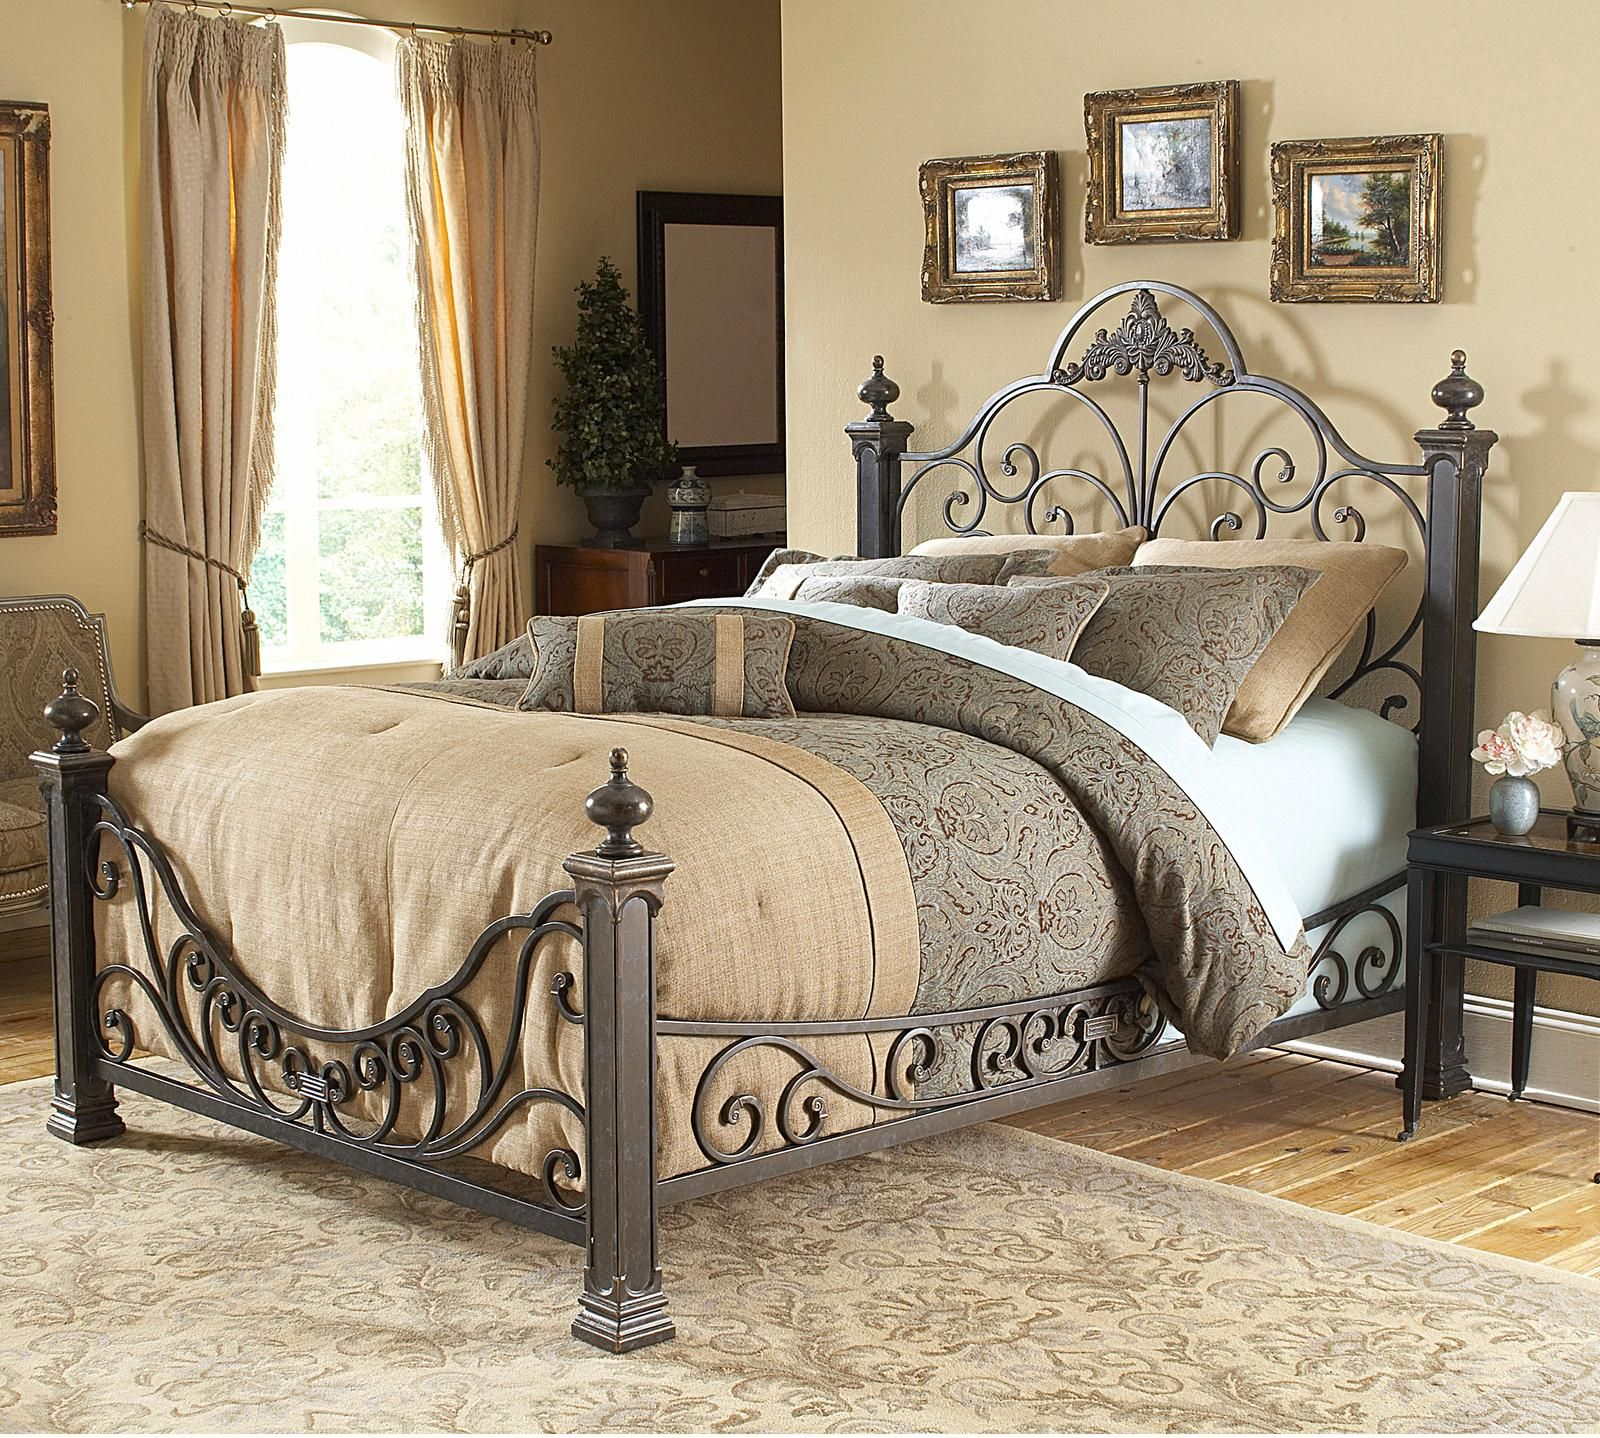 delight in beautiful simplicity with the baroque bed, the simple